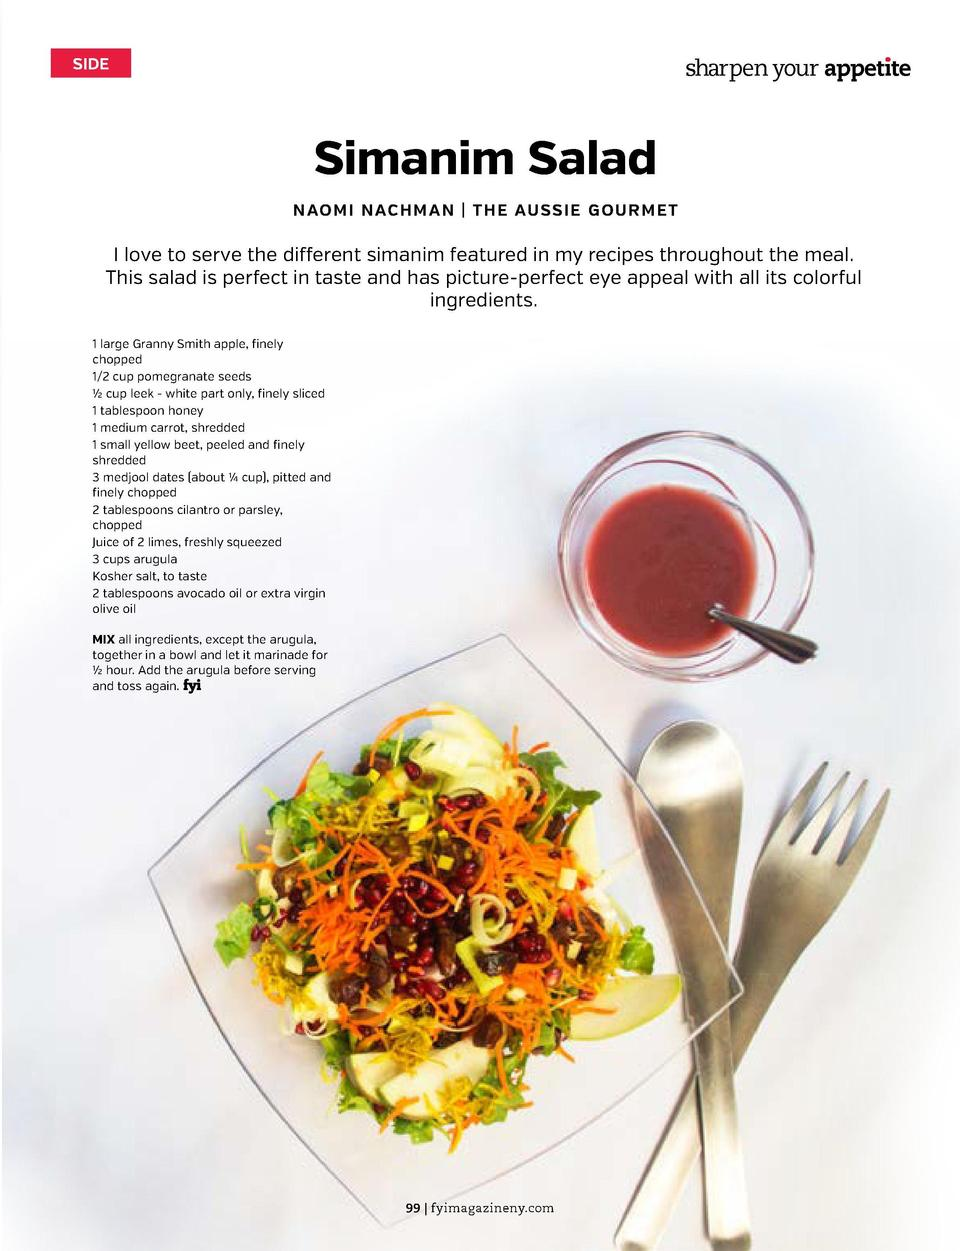 SIDE  sharpen your appet  te  sharpen your appet  te  SIDE  Orange-Tarragon Roasted Carrots  Simanim Salad  DINI KLEIN   D...